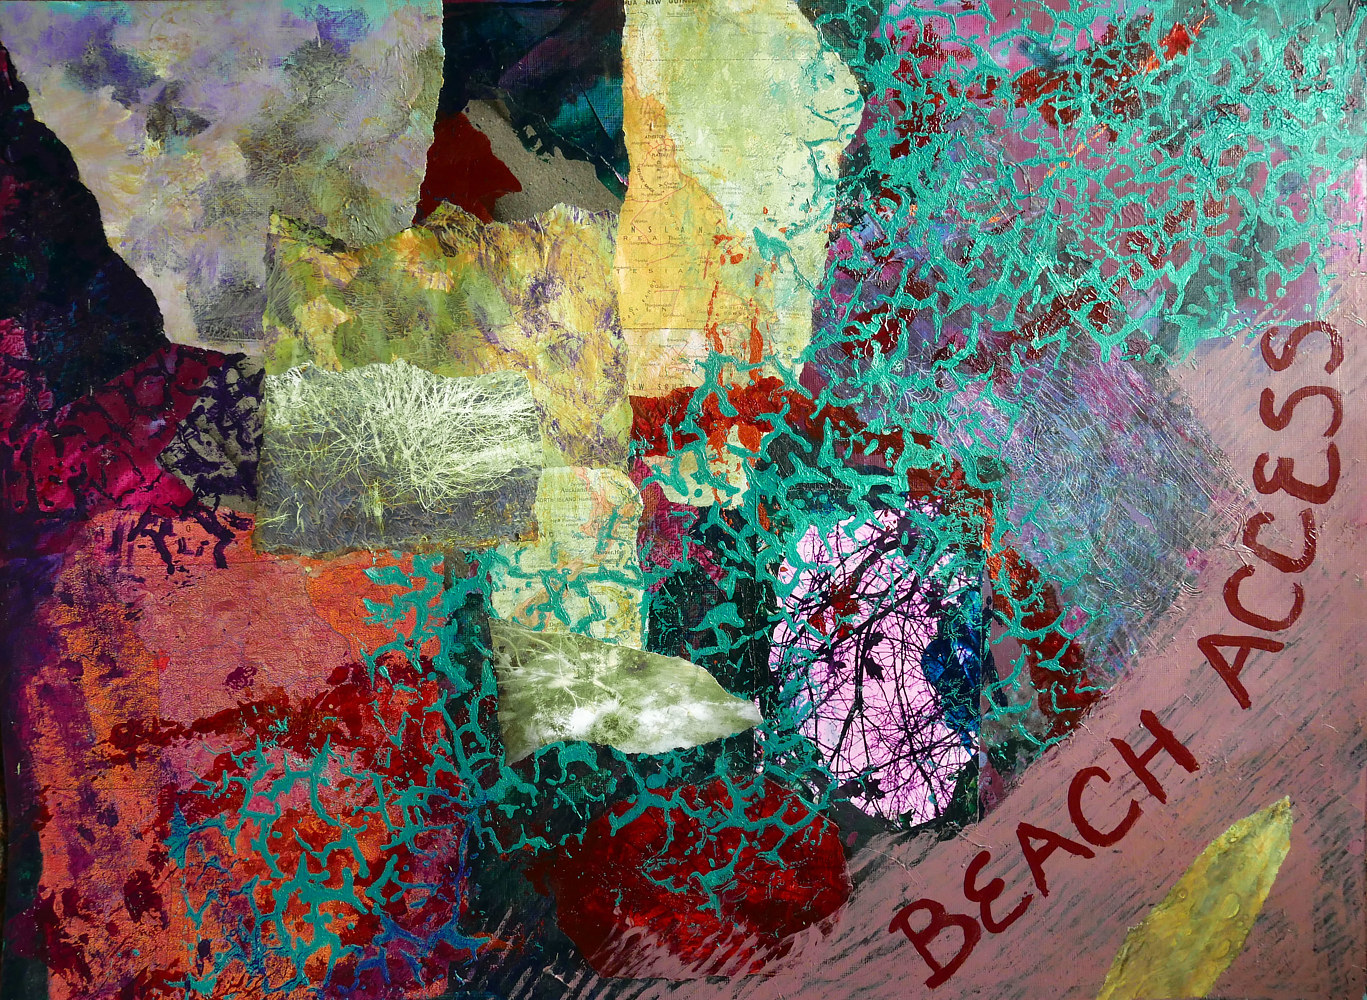 Mixed-media artwork Beach Access by Pamela Pitt